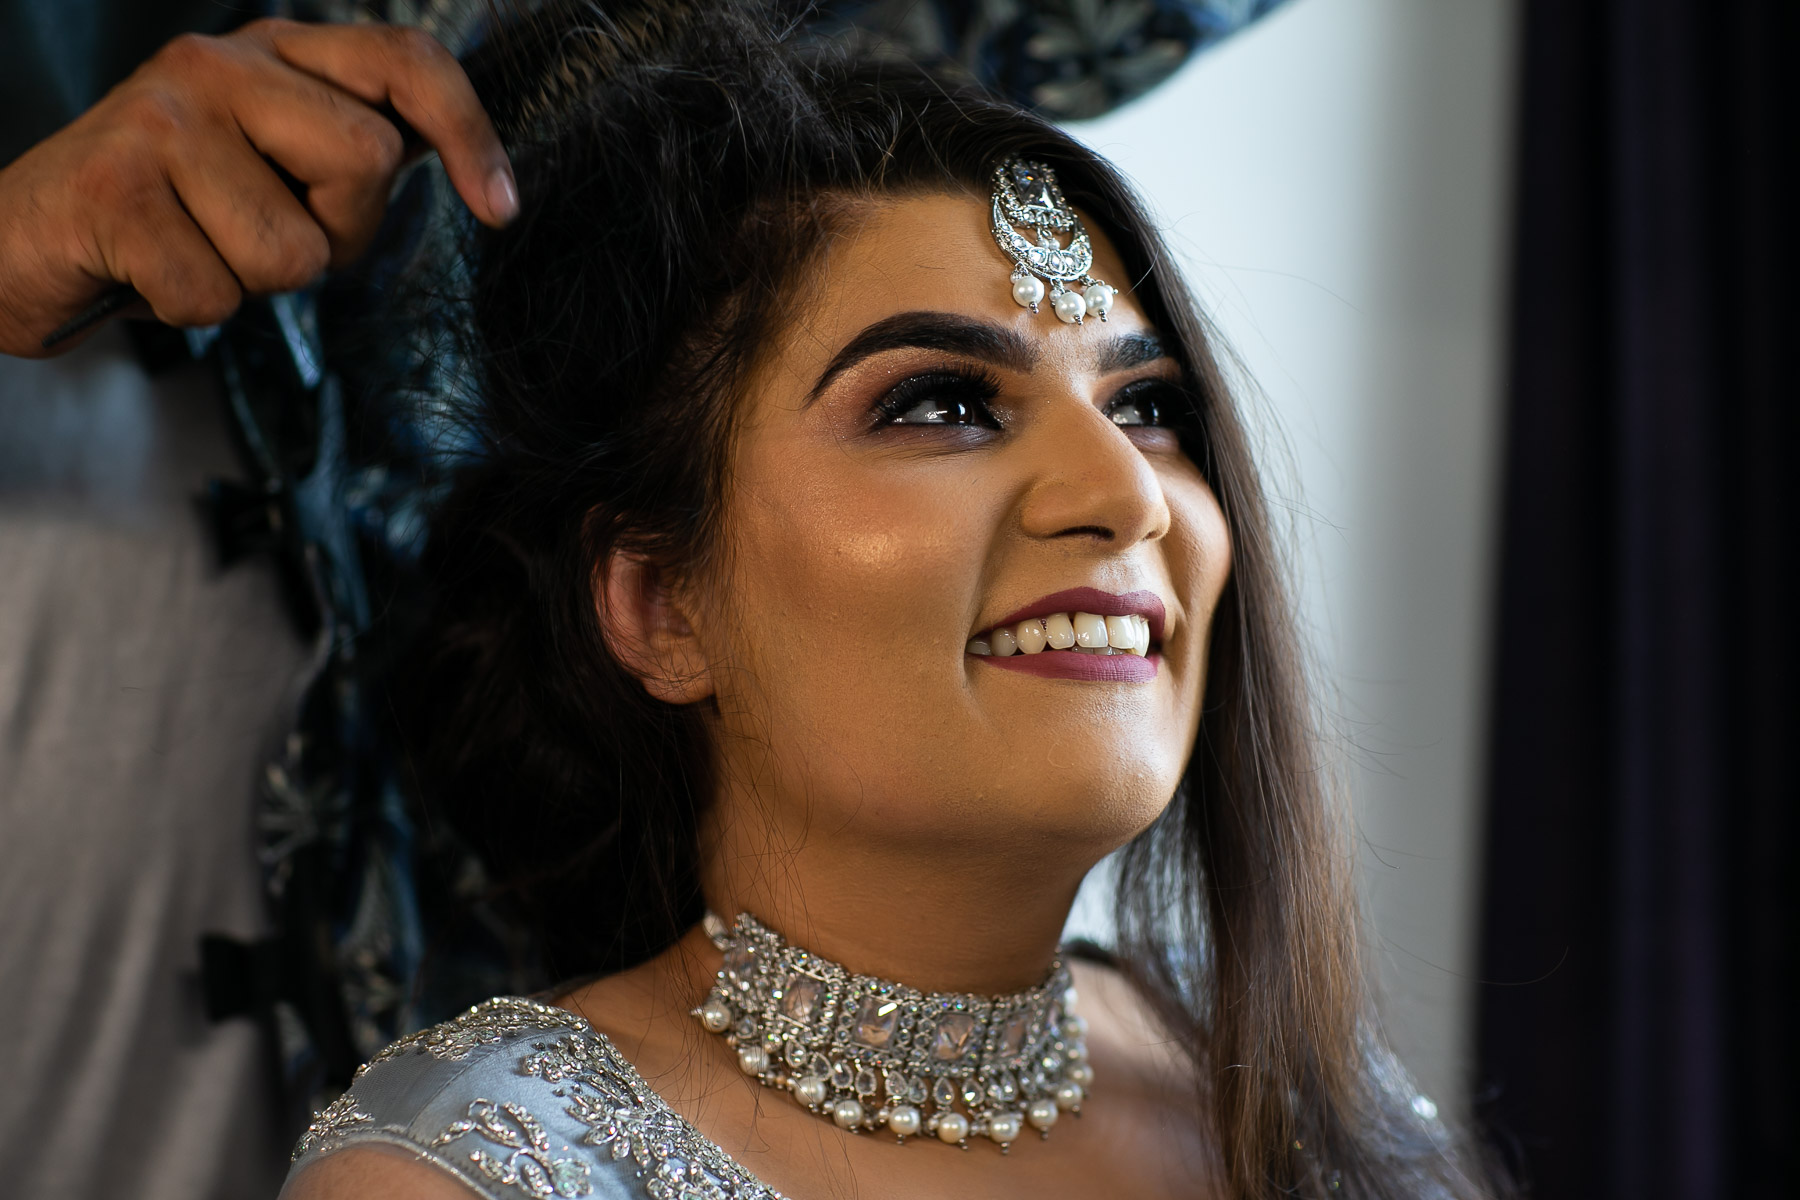 Stunning bride getting ready for her wedding day